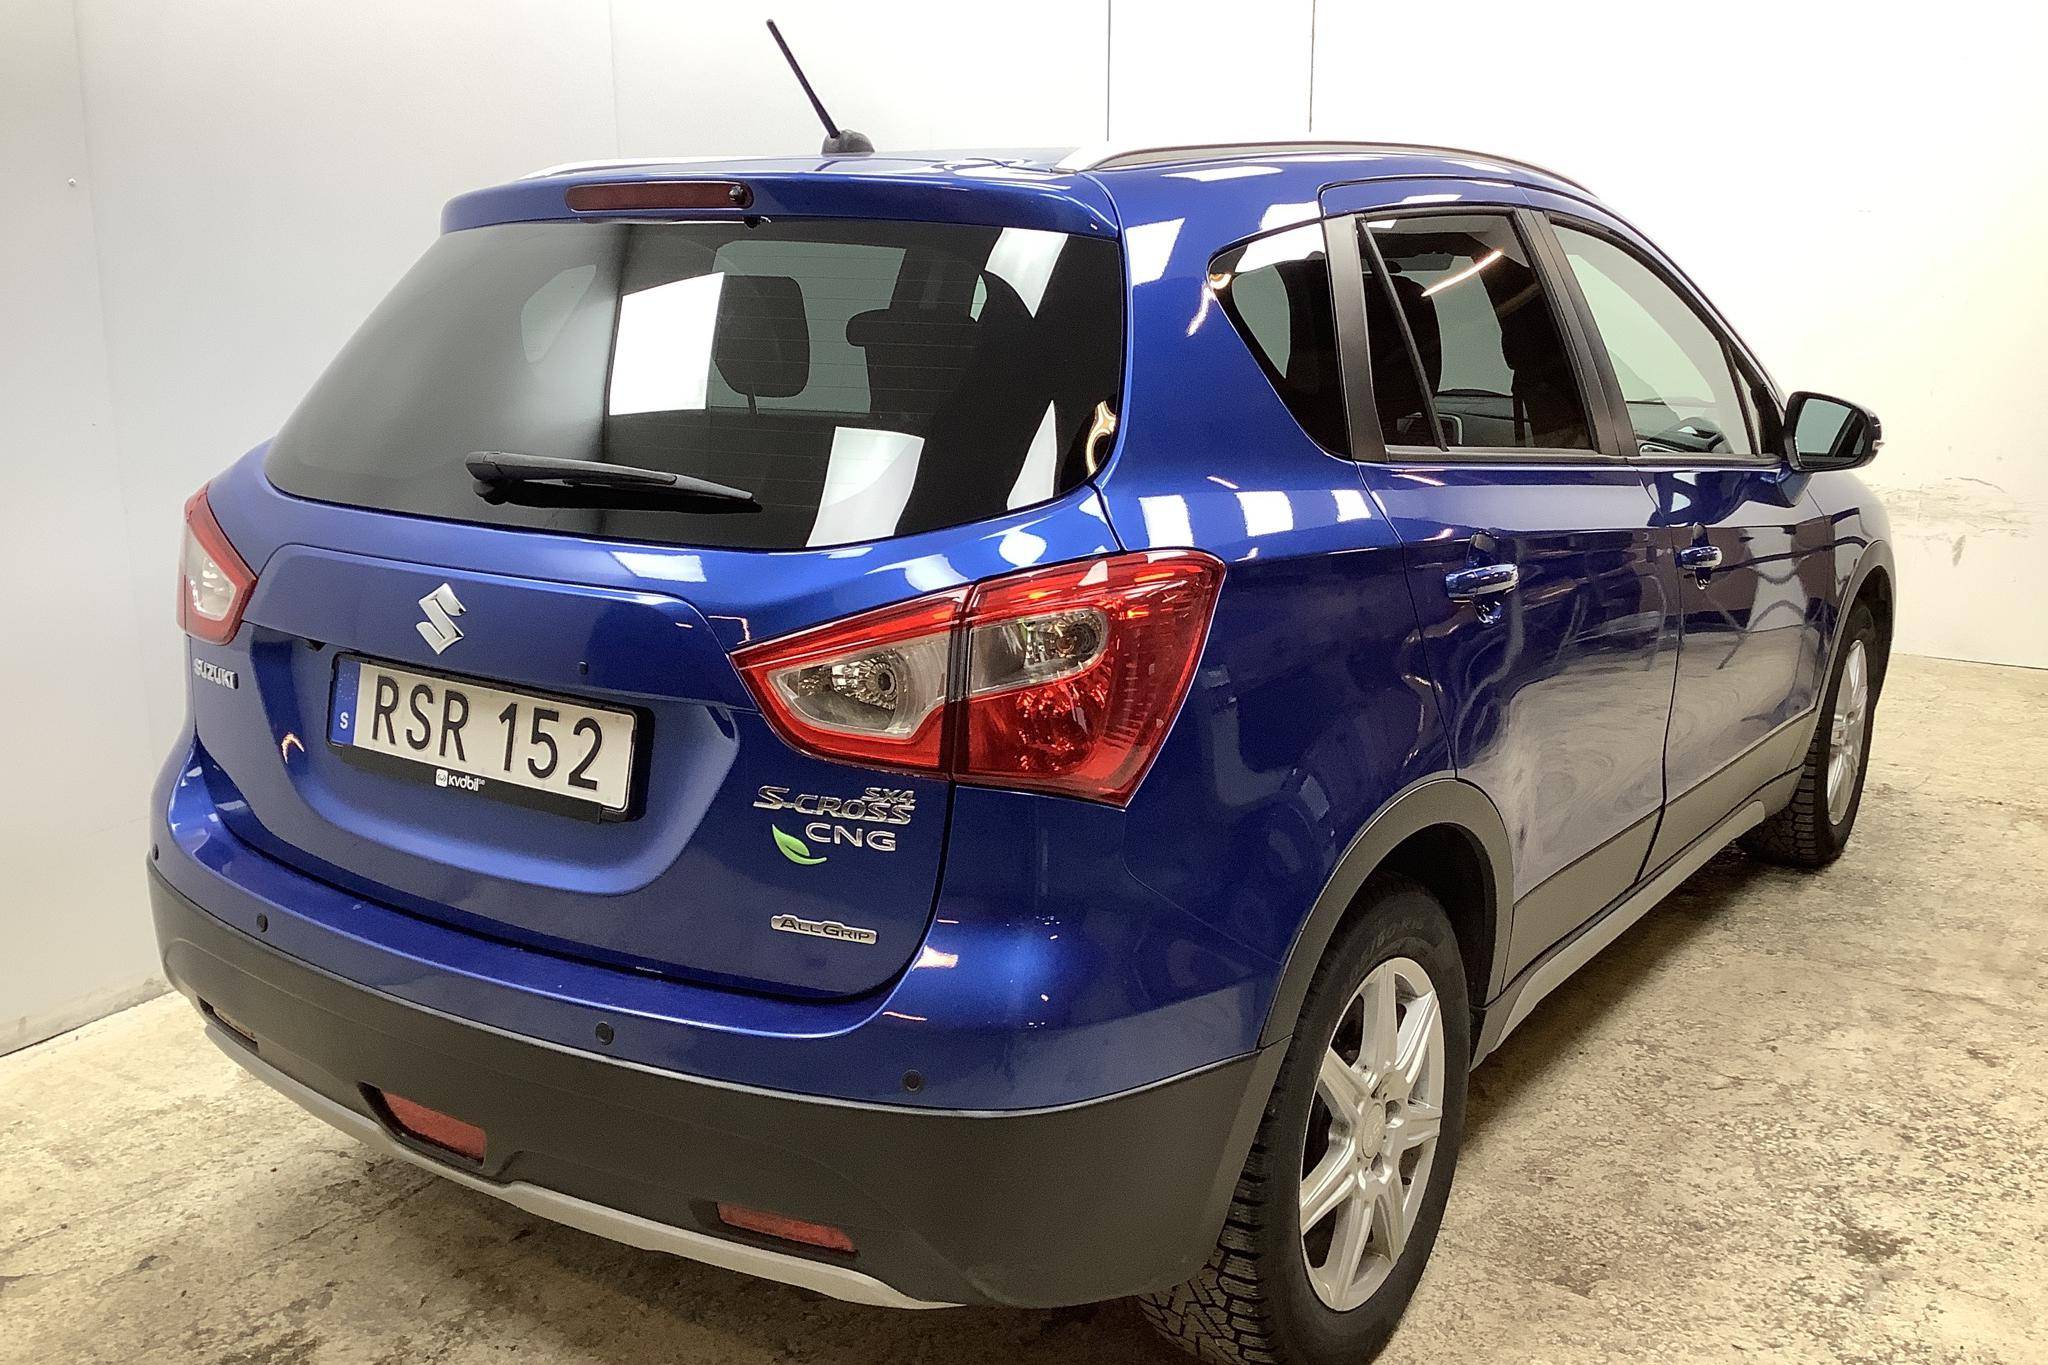 Suzuki S-Cross 1.6 4x4 (120hk) - 75 380 km - Manual - blue - 2015